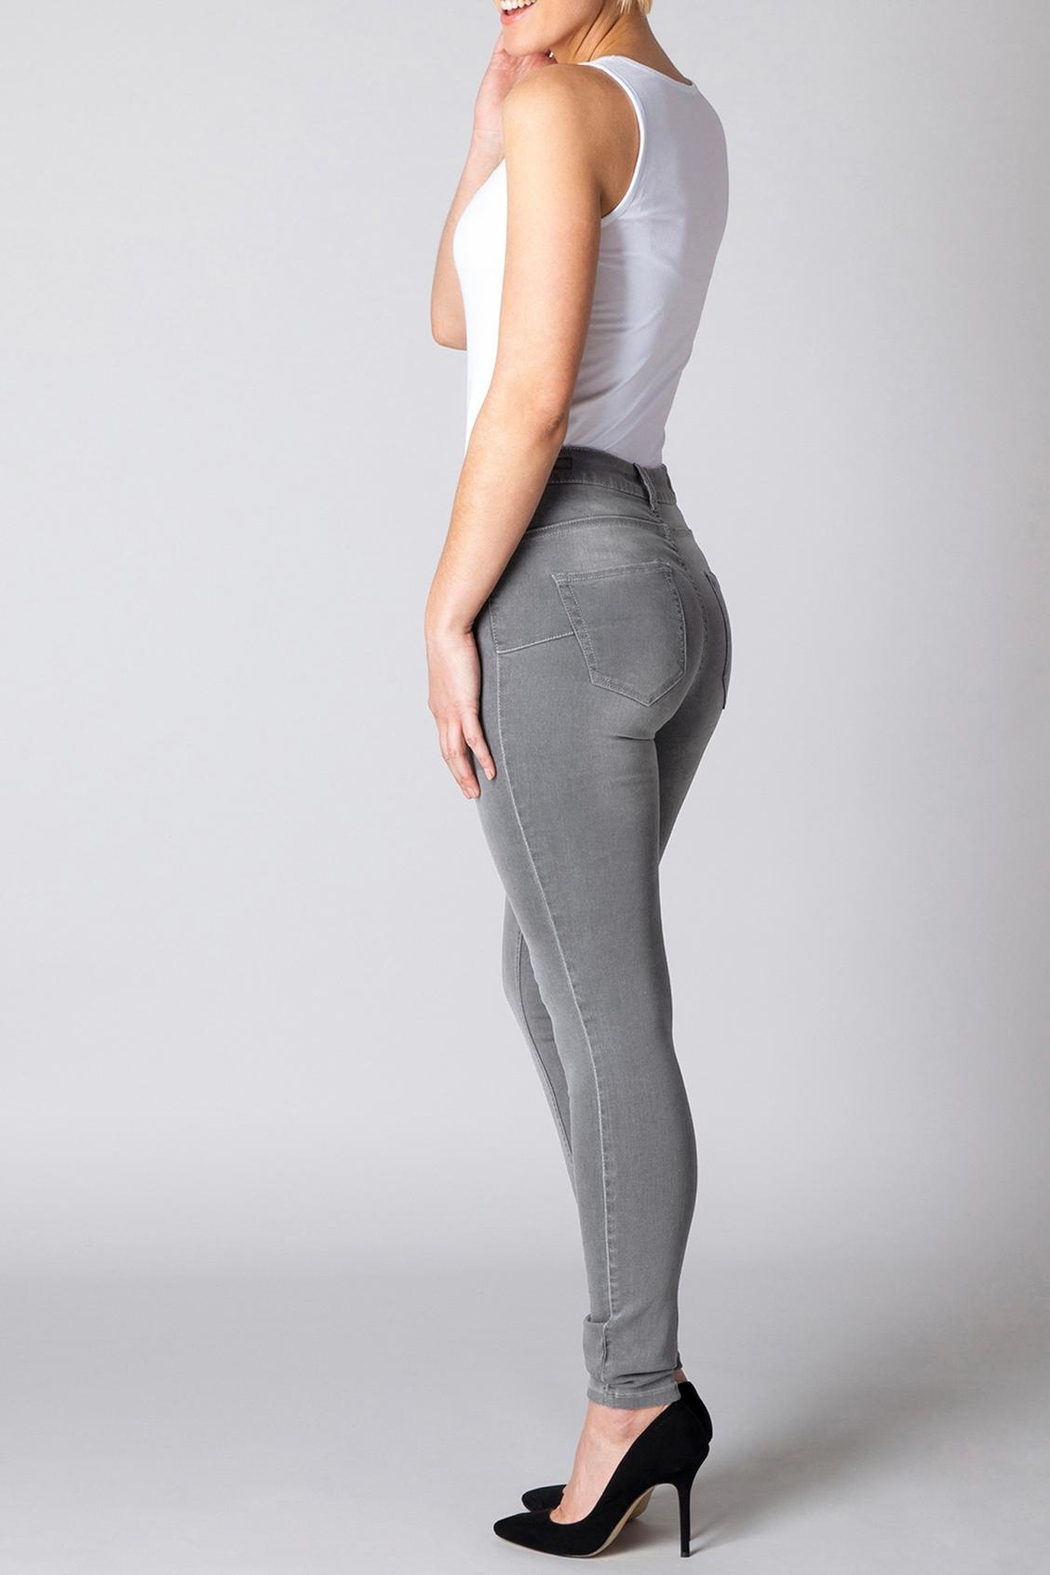 Yest Grey Slimming Jeans - Main Image